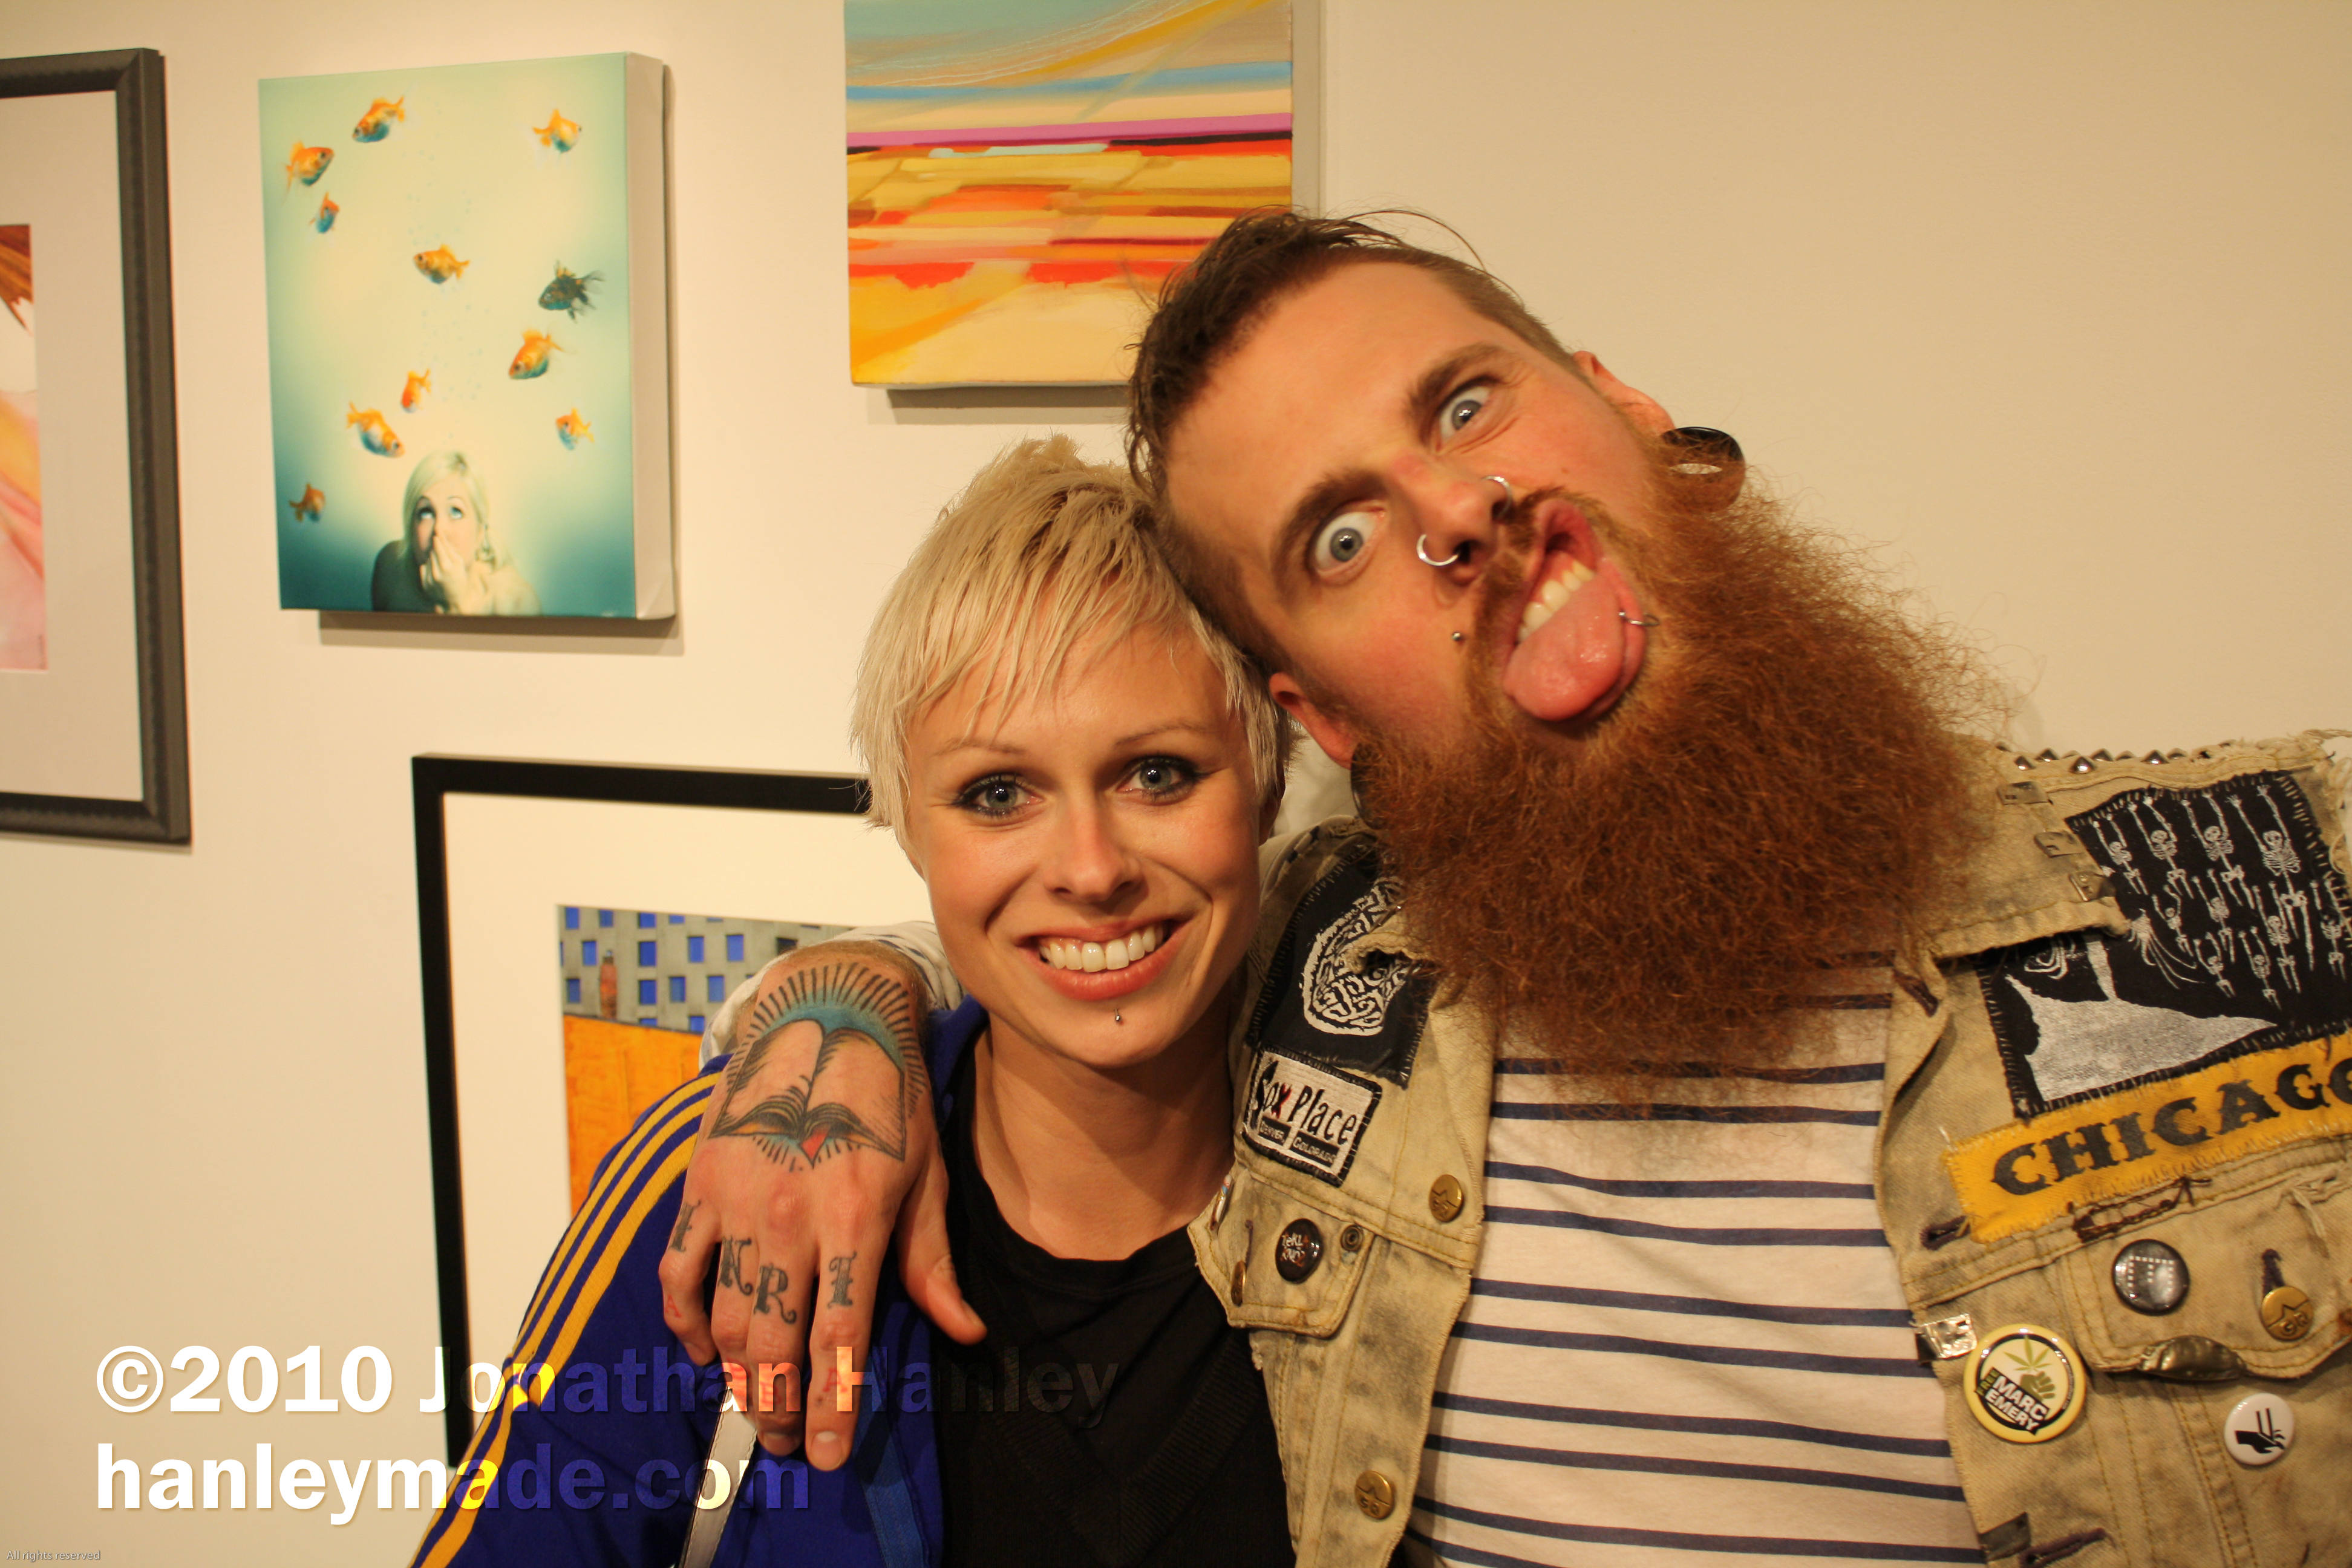 Morgan Black and Rachel Ellenord were at the Gallery opening to support Zoe Pawlak.